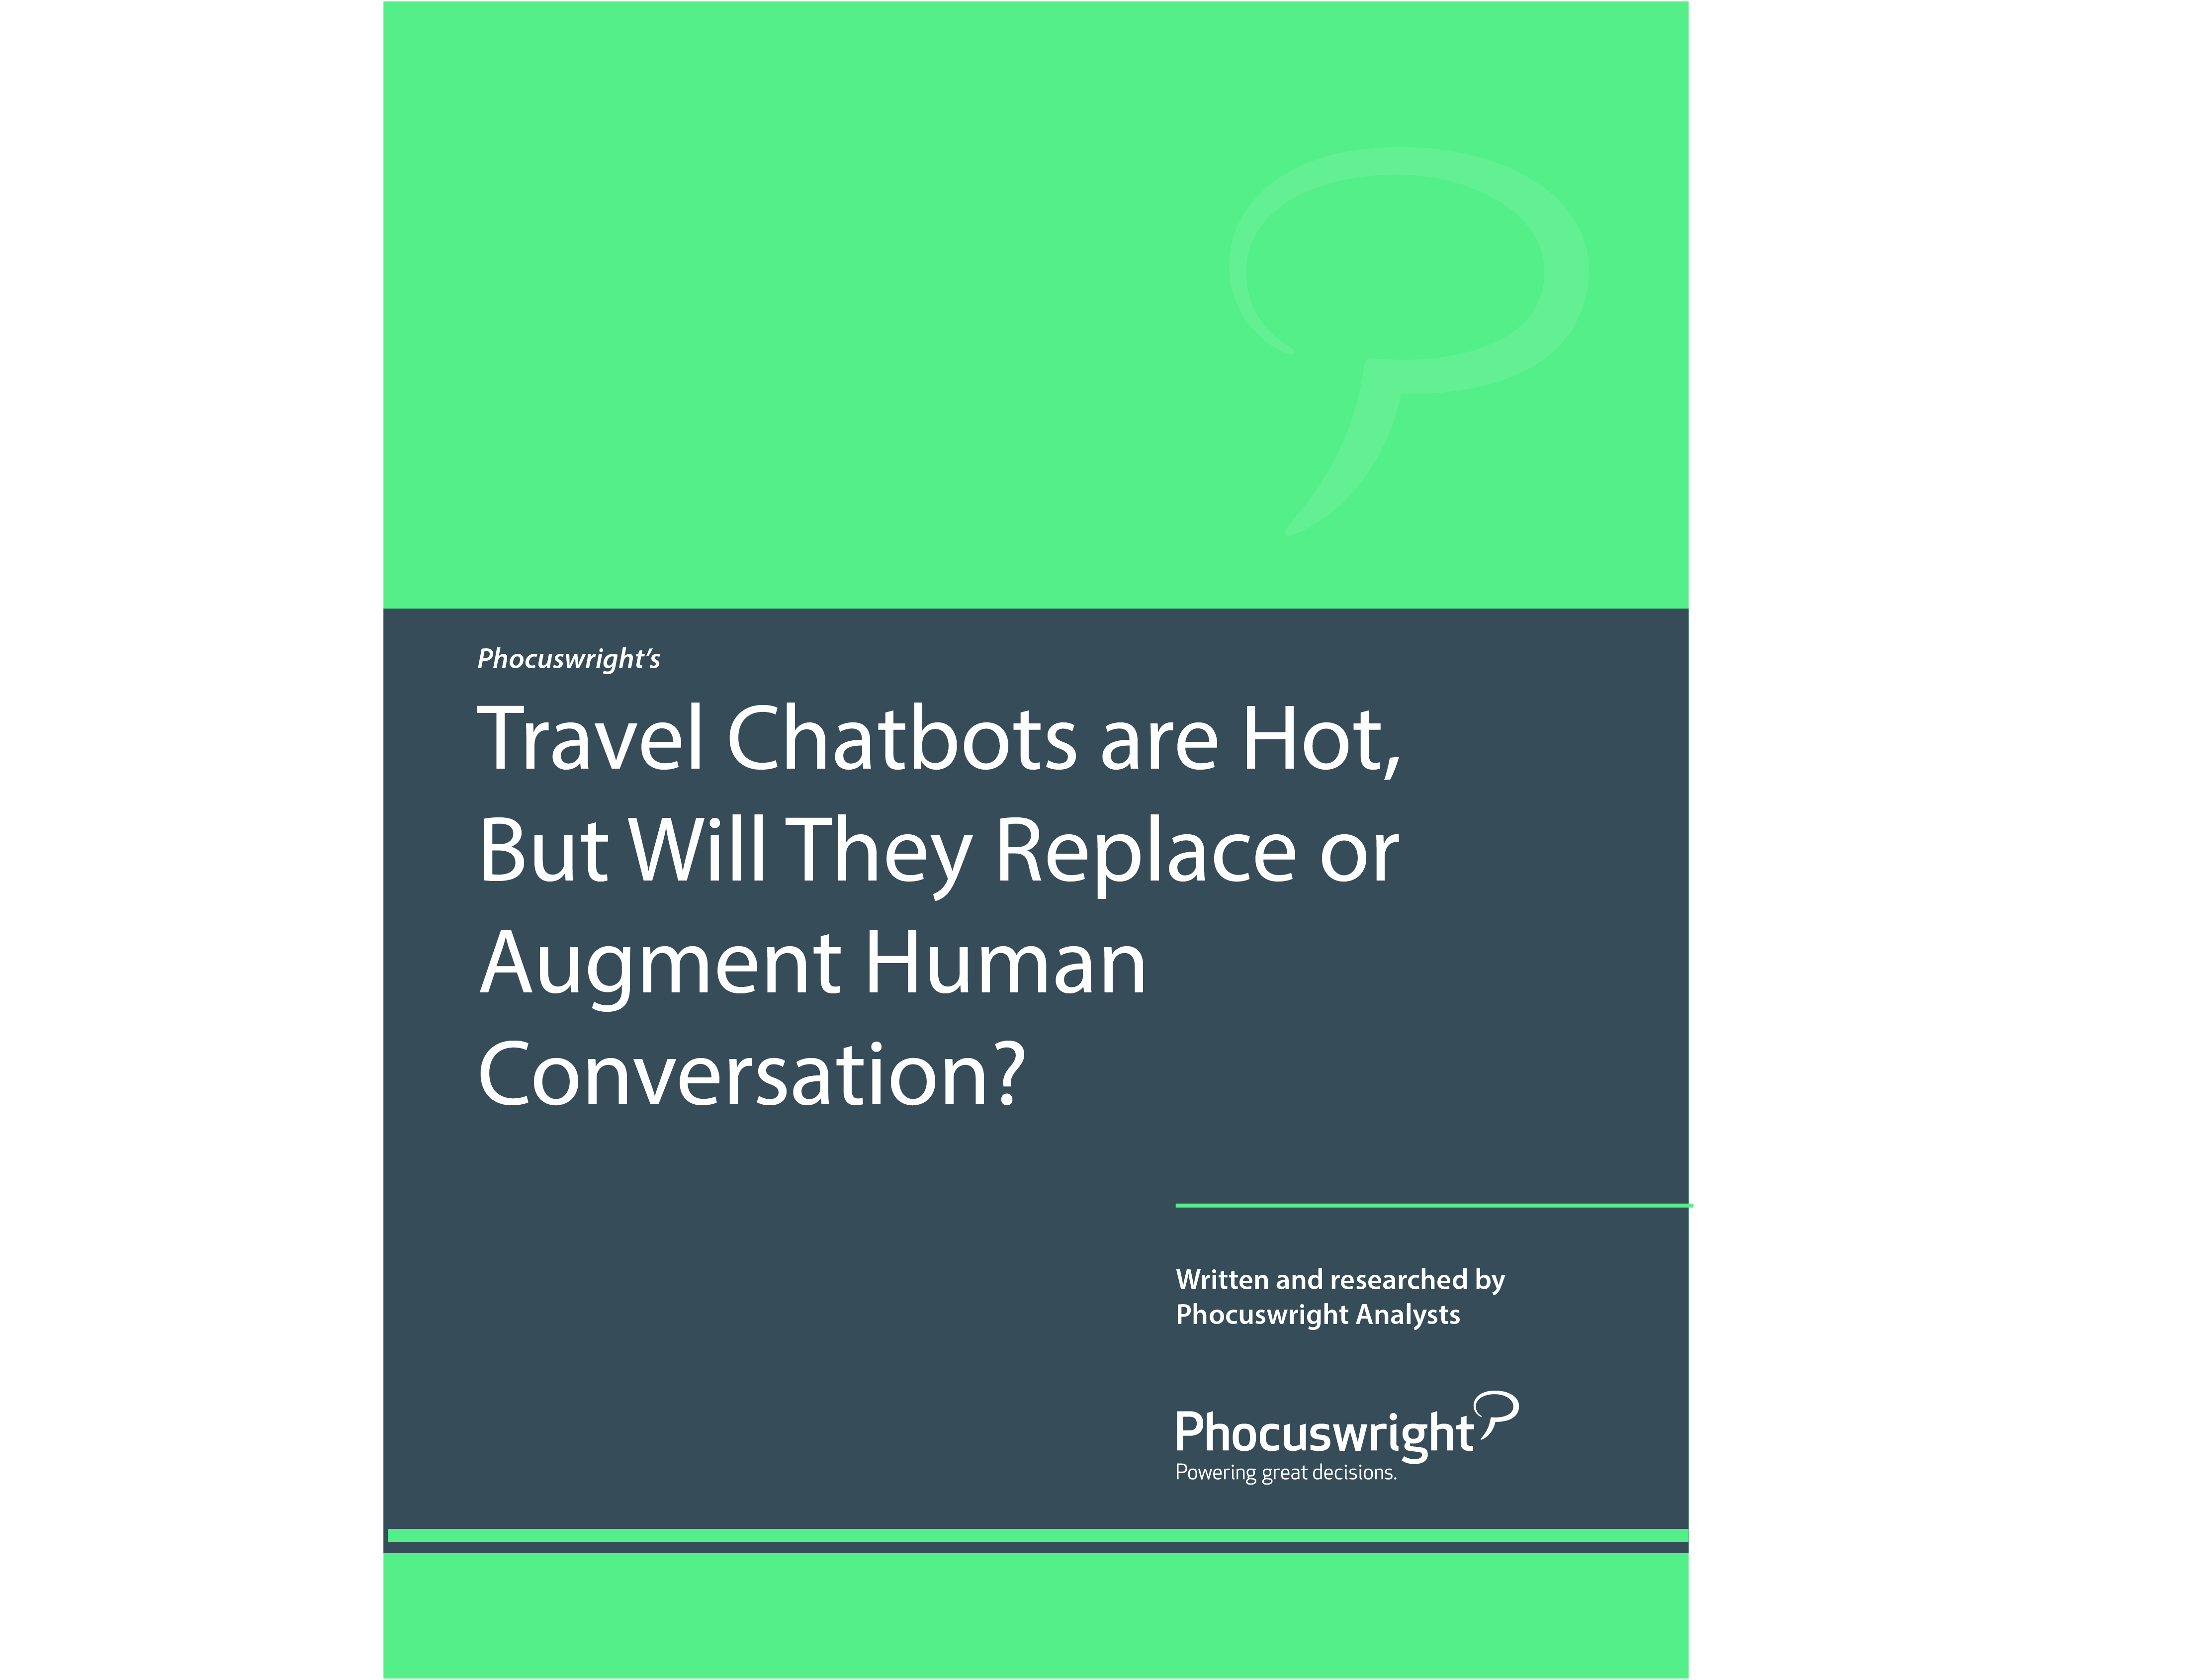 Travel Chatbots are Hot, But Will They Replace or Augment Human Conversation?